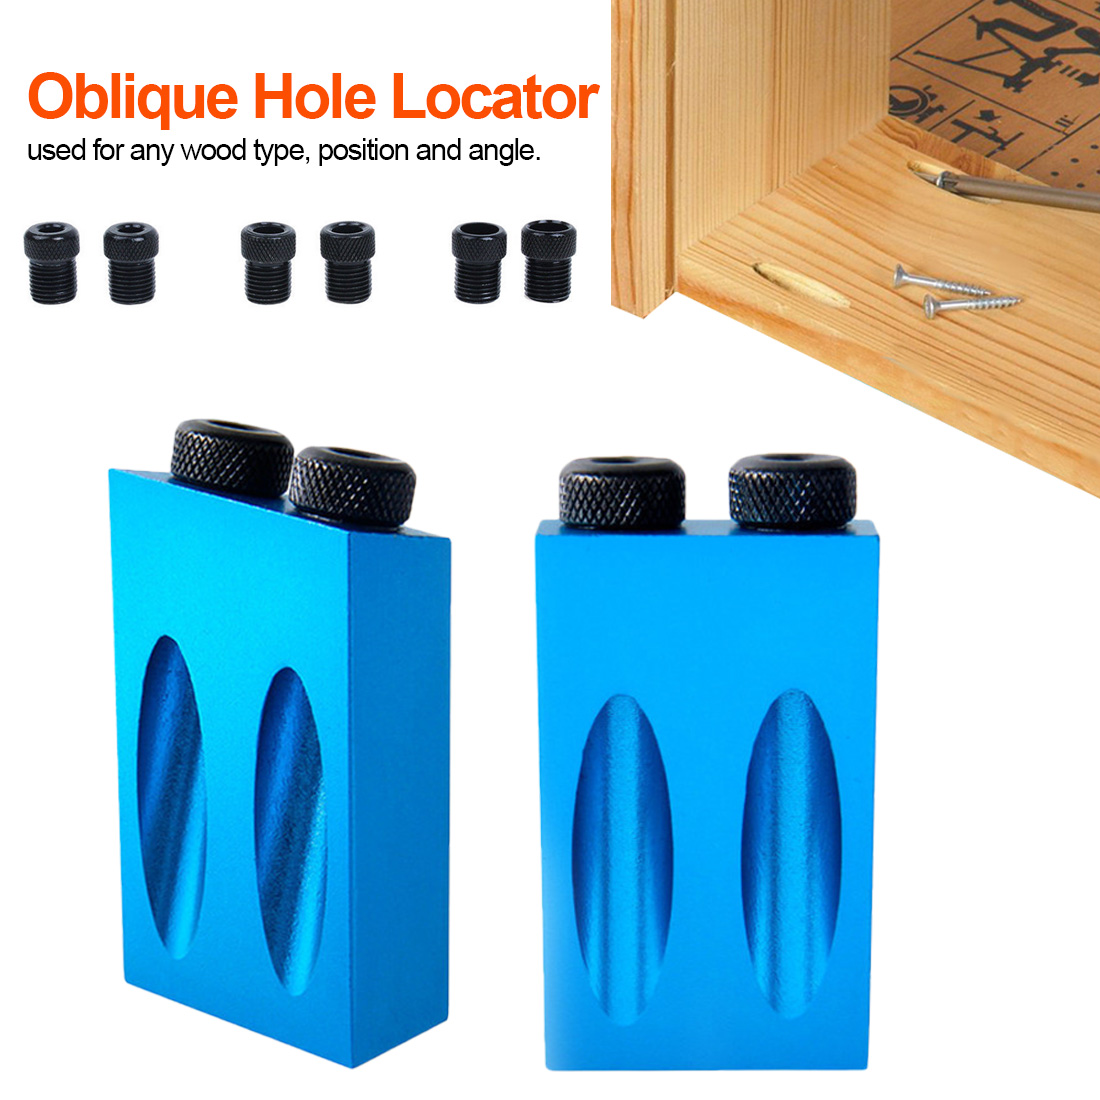 6/8/10mm Angle Drill Guide Set Hole Puncher Locator Jig Drill Bit Set Woodworking Pocket Hole Jig Kit For DIY Carpentry Tools